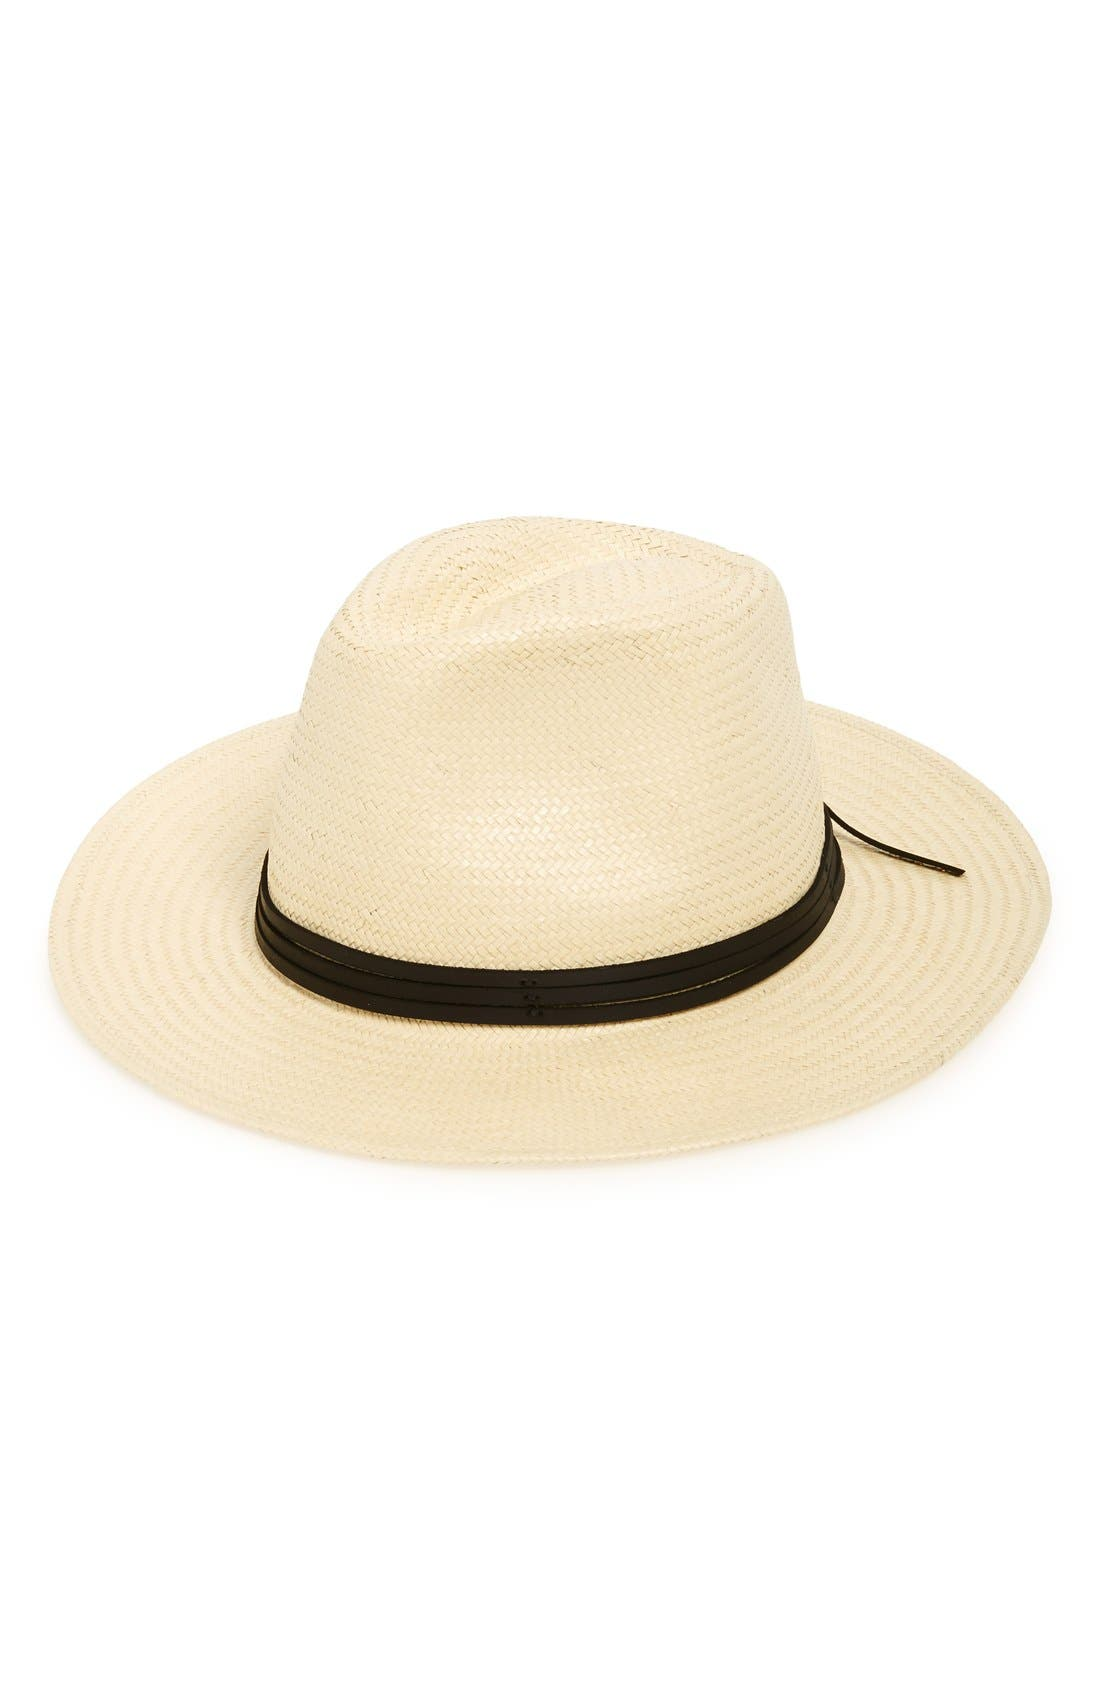 'Pacific' Straw Fedora,                         Main,                         color, Beige